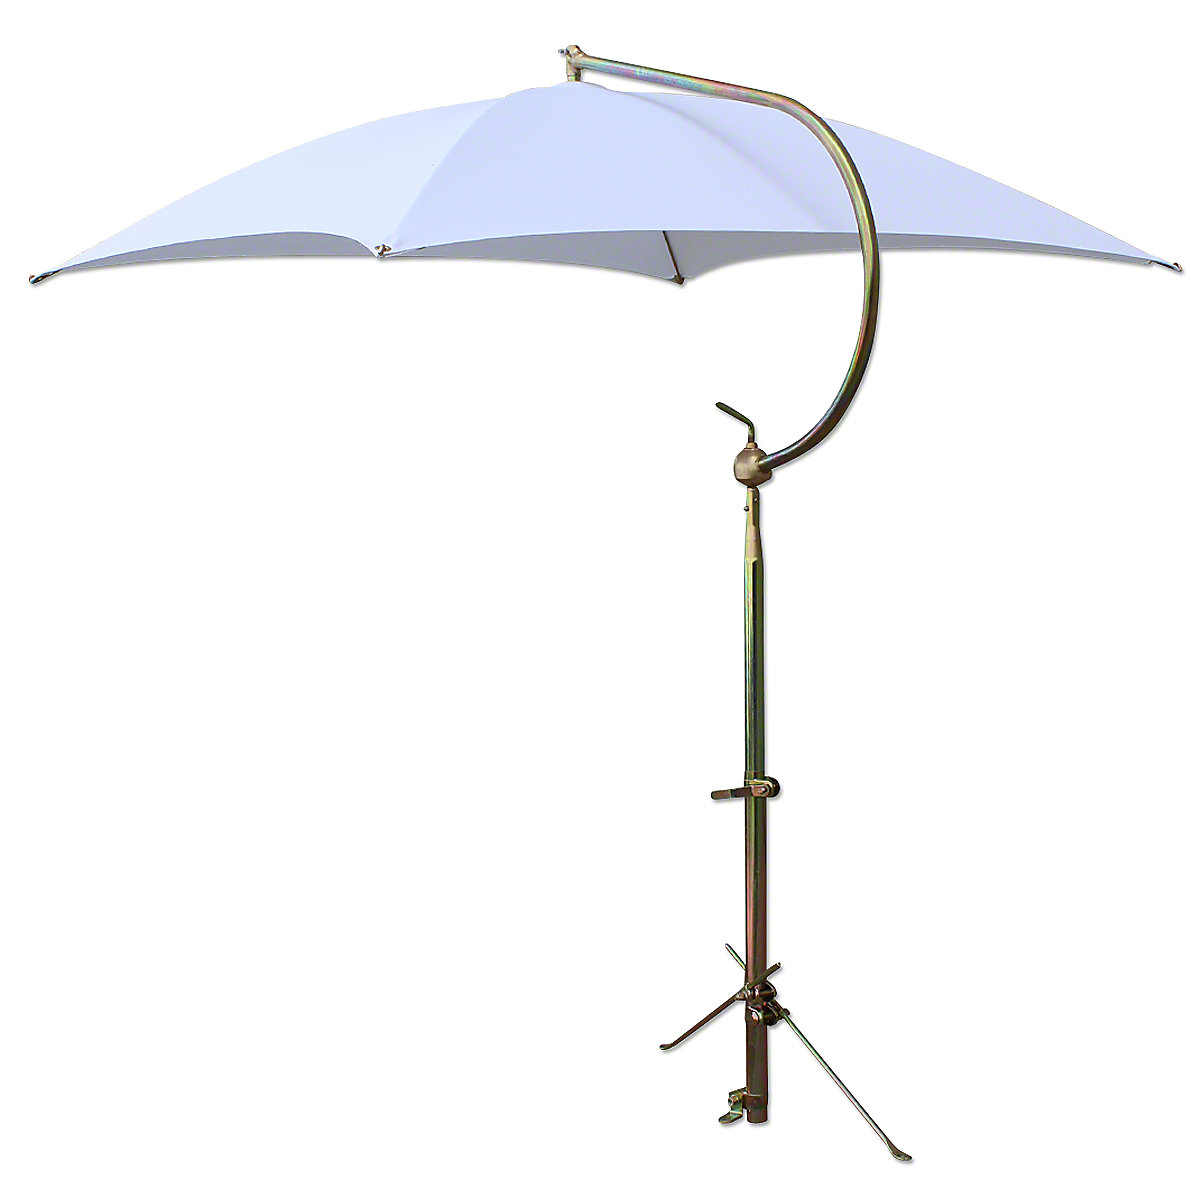 Deluxe White Tractor Umbrella With Brackets. Four oil-tempered spring steel bows are locked into place with individual spring clips, providing ease of operation and a rigid framework for the cover. Frame constructed of tubular steel. All metal parts, including frame and mounting brackets, zinc plated for rust resistance and lasting appearance. 54 square cover is made of durable polyester material. Each corner is double reinforced and has heavy steel grommets. Complete with universal mounting bracket. NOTE: Can be mounted on side of fender, rear end / axle housing, foot platform. Fits tractors, combines, swathers and Industrial equipment.